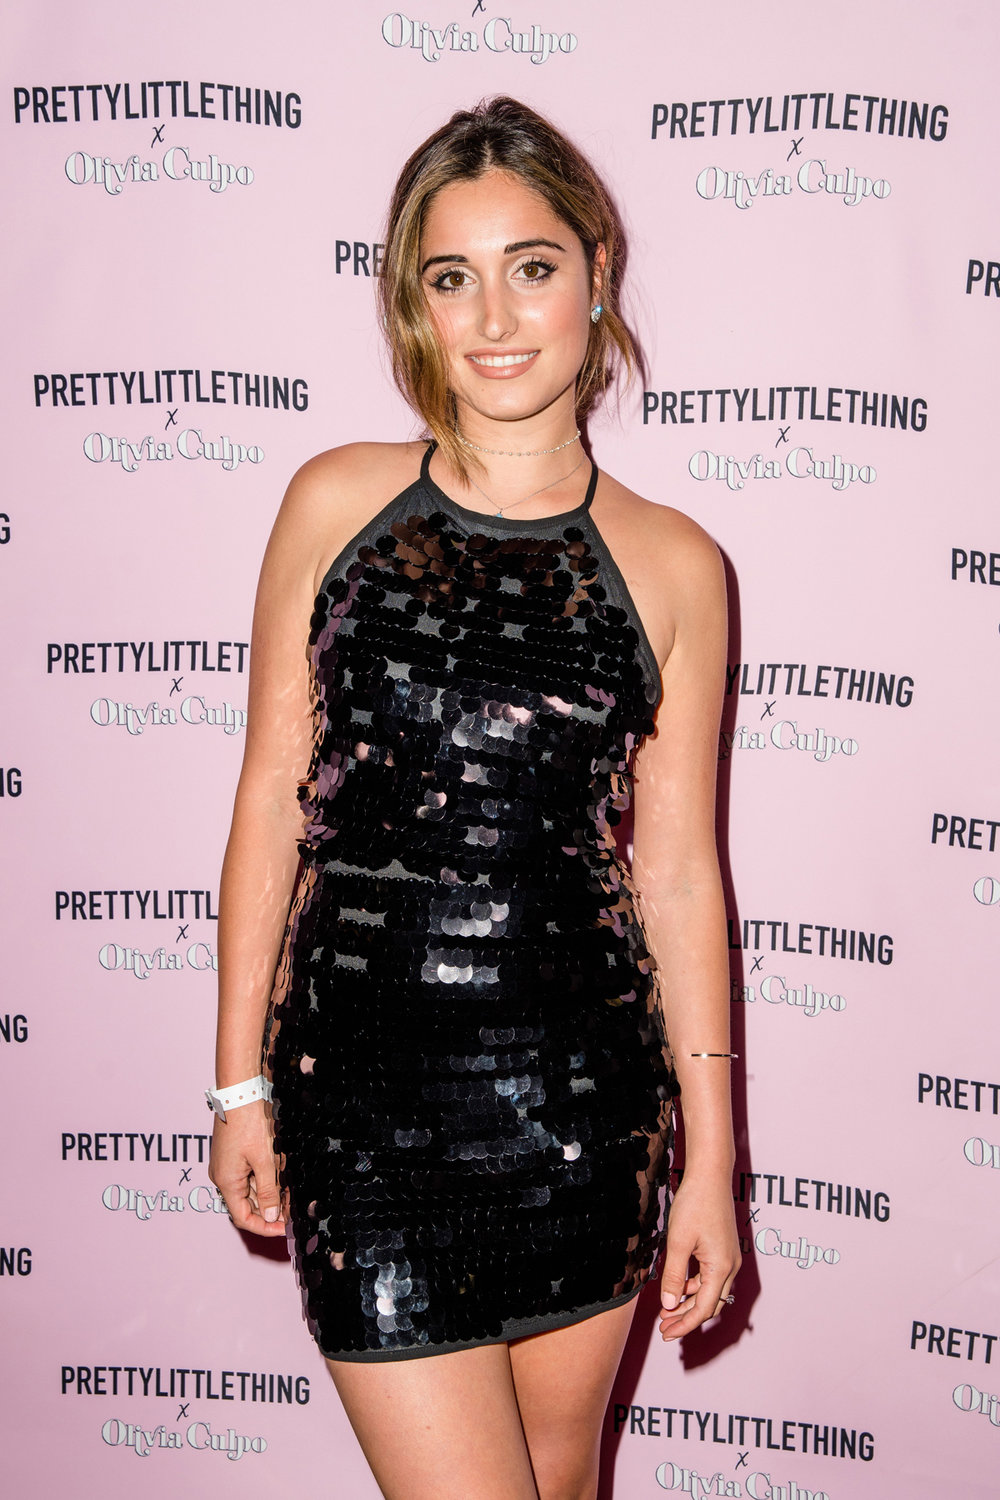 PrettyLittleThing PLT X Olivia Culpo Collection  Celebrity Launch Party Leila Pari.jpg